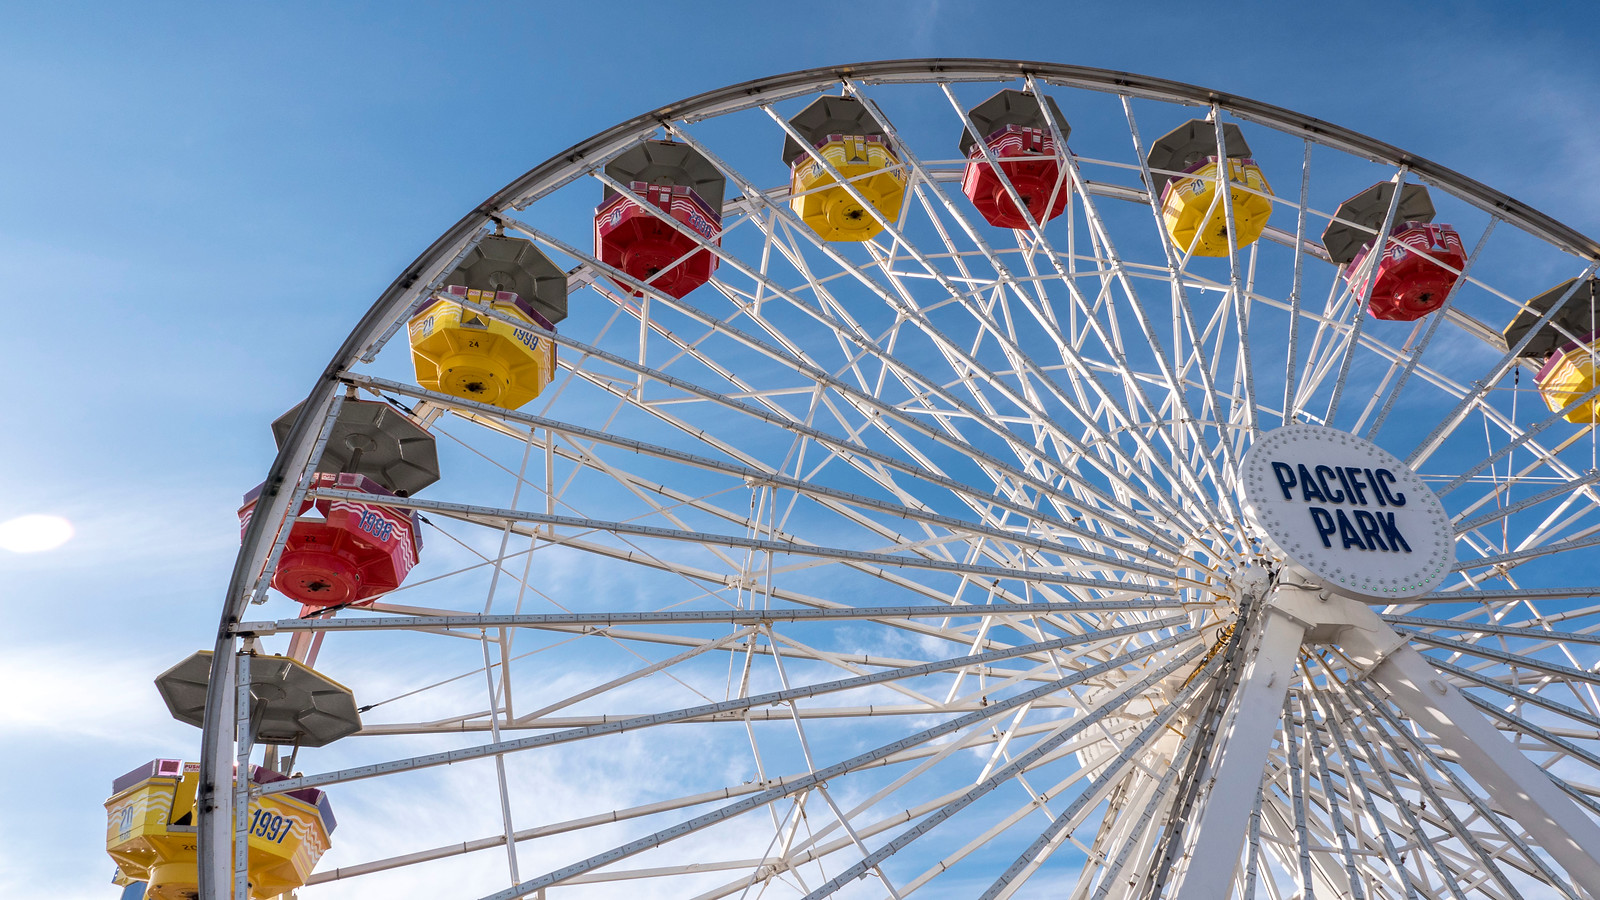 Ferris Wheel at Santa Monica Pier - 2 Days in Los Angeles Itinerary for First Timers